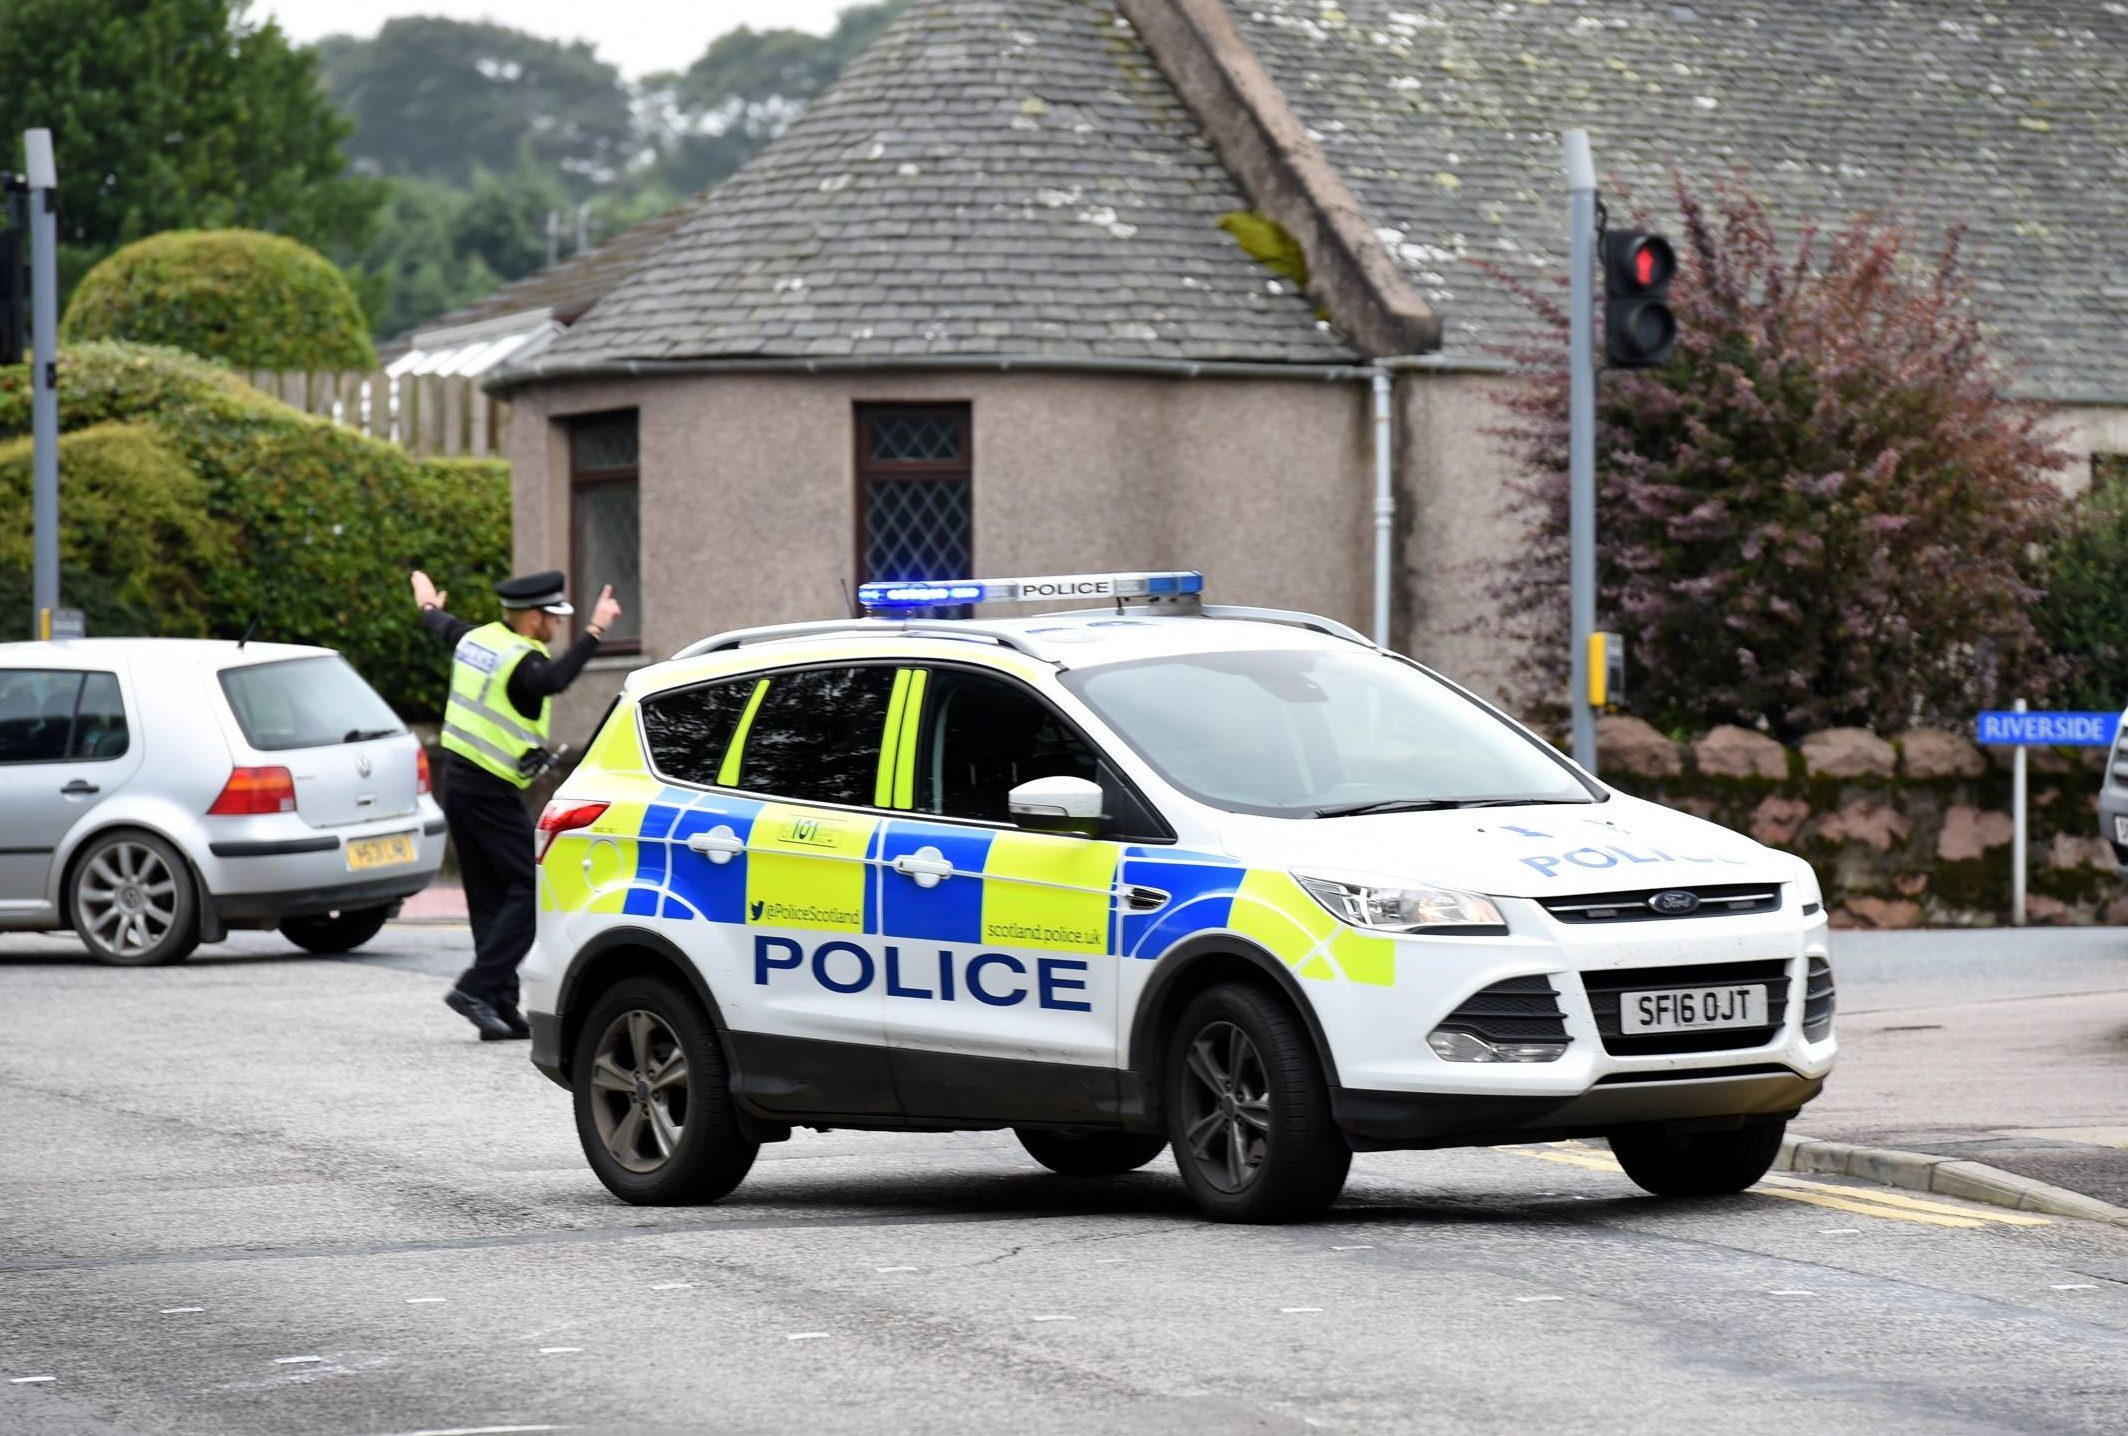 Police had to close the bridge going over the River Ythan in Ellon following the incident.